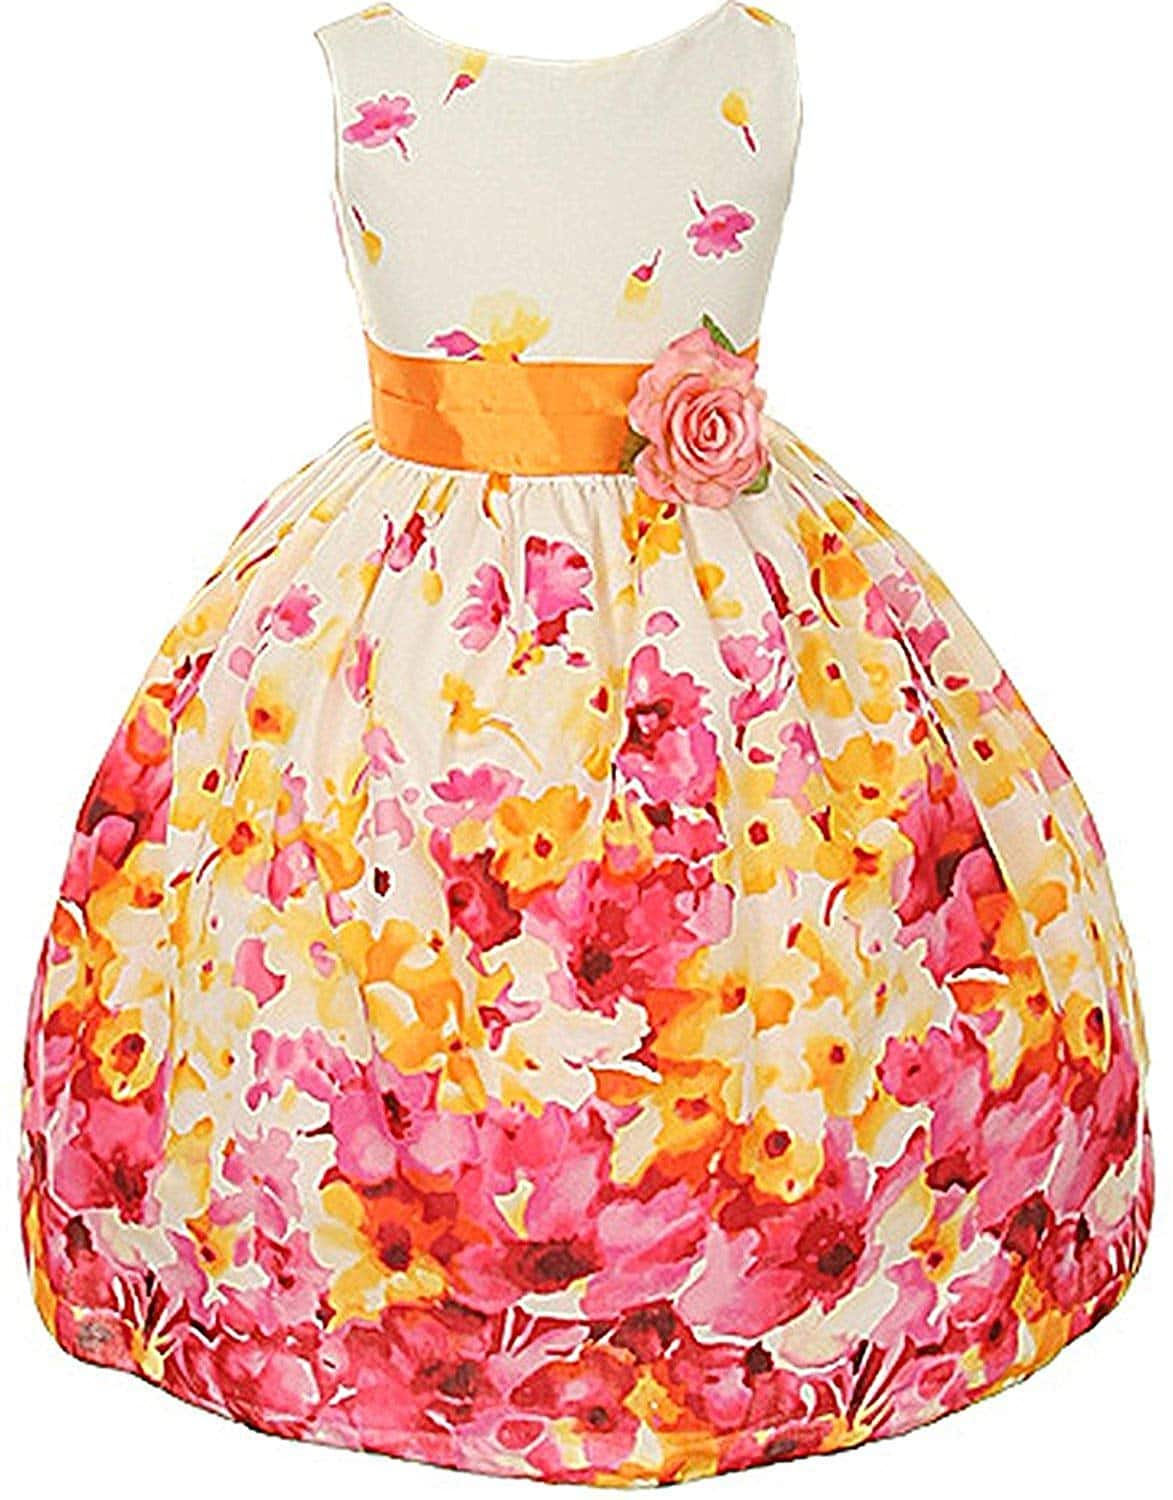 Kid's Dream Fuchsia Flower Print Sash Easter Dress Little Girls 2T-12